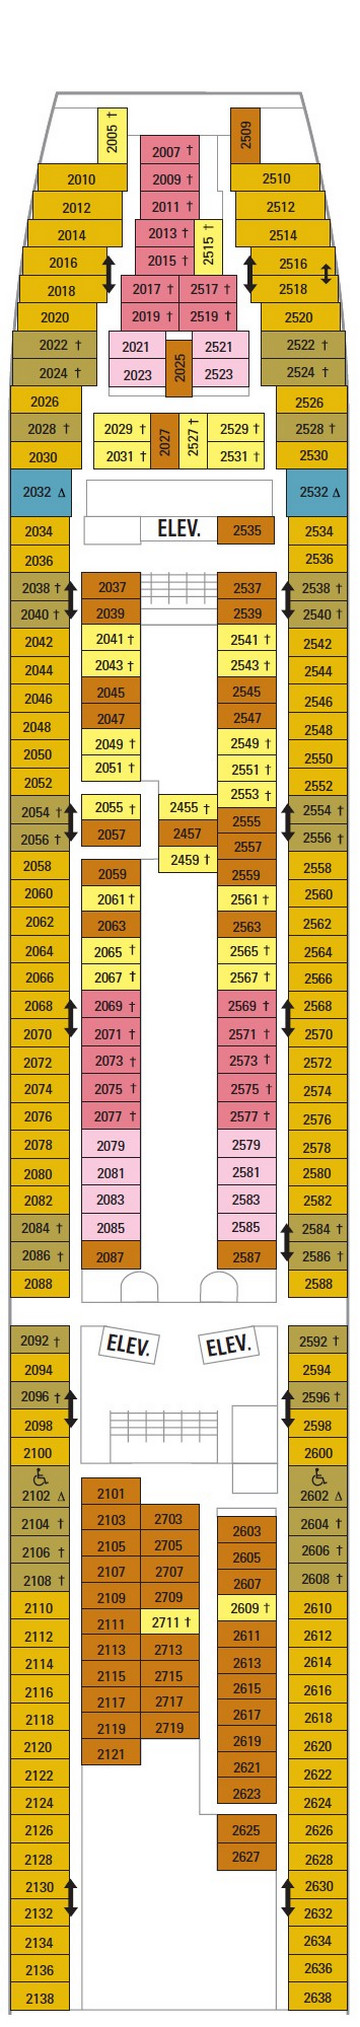 Vision Of The Seas Deck 2 layout